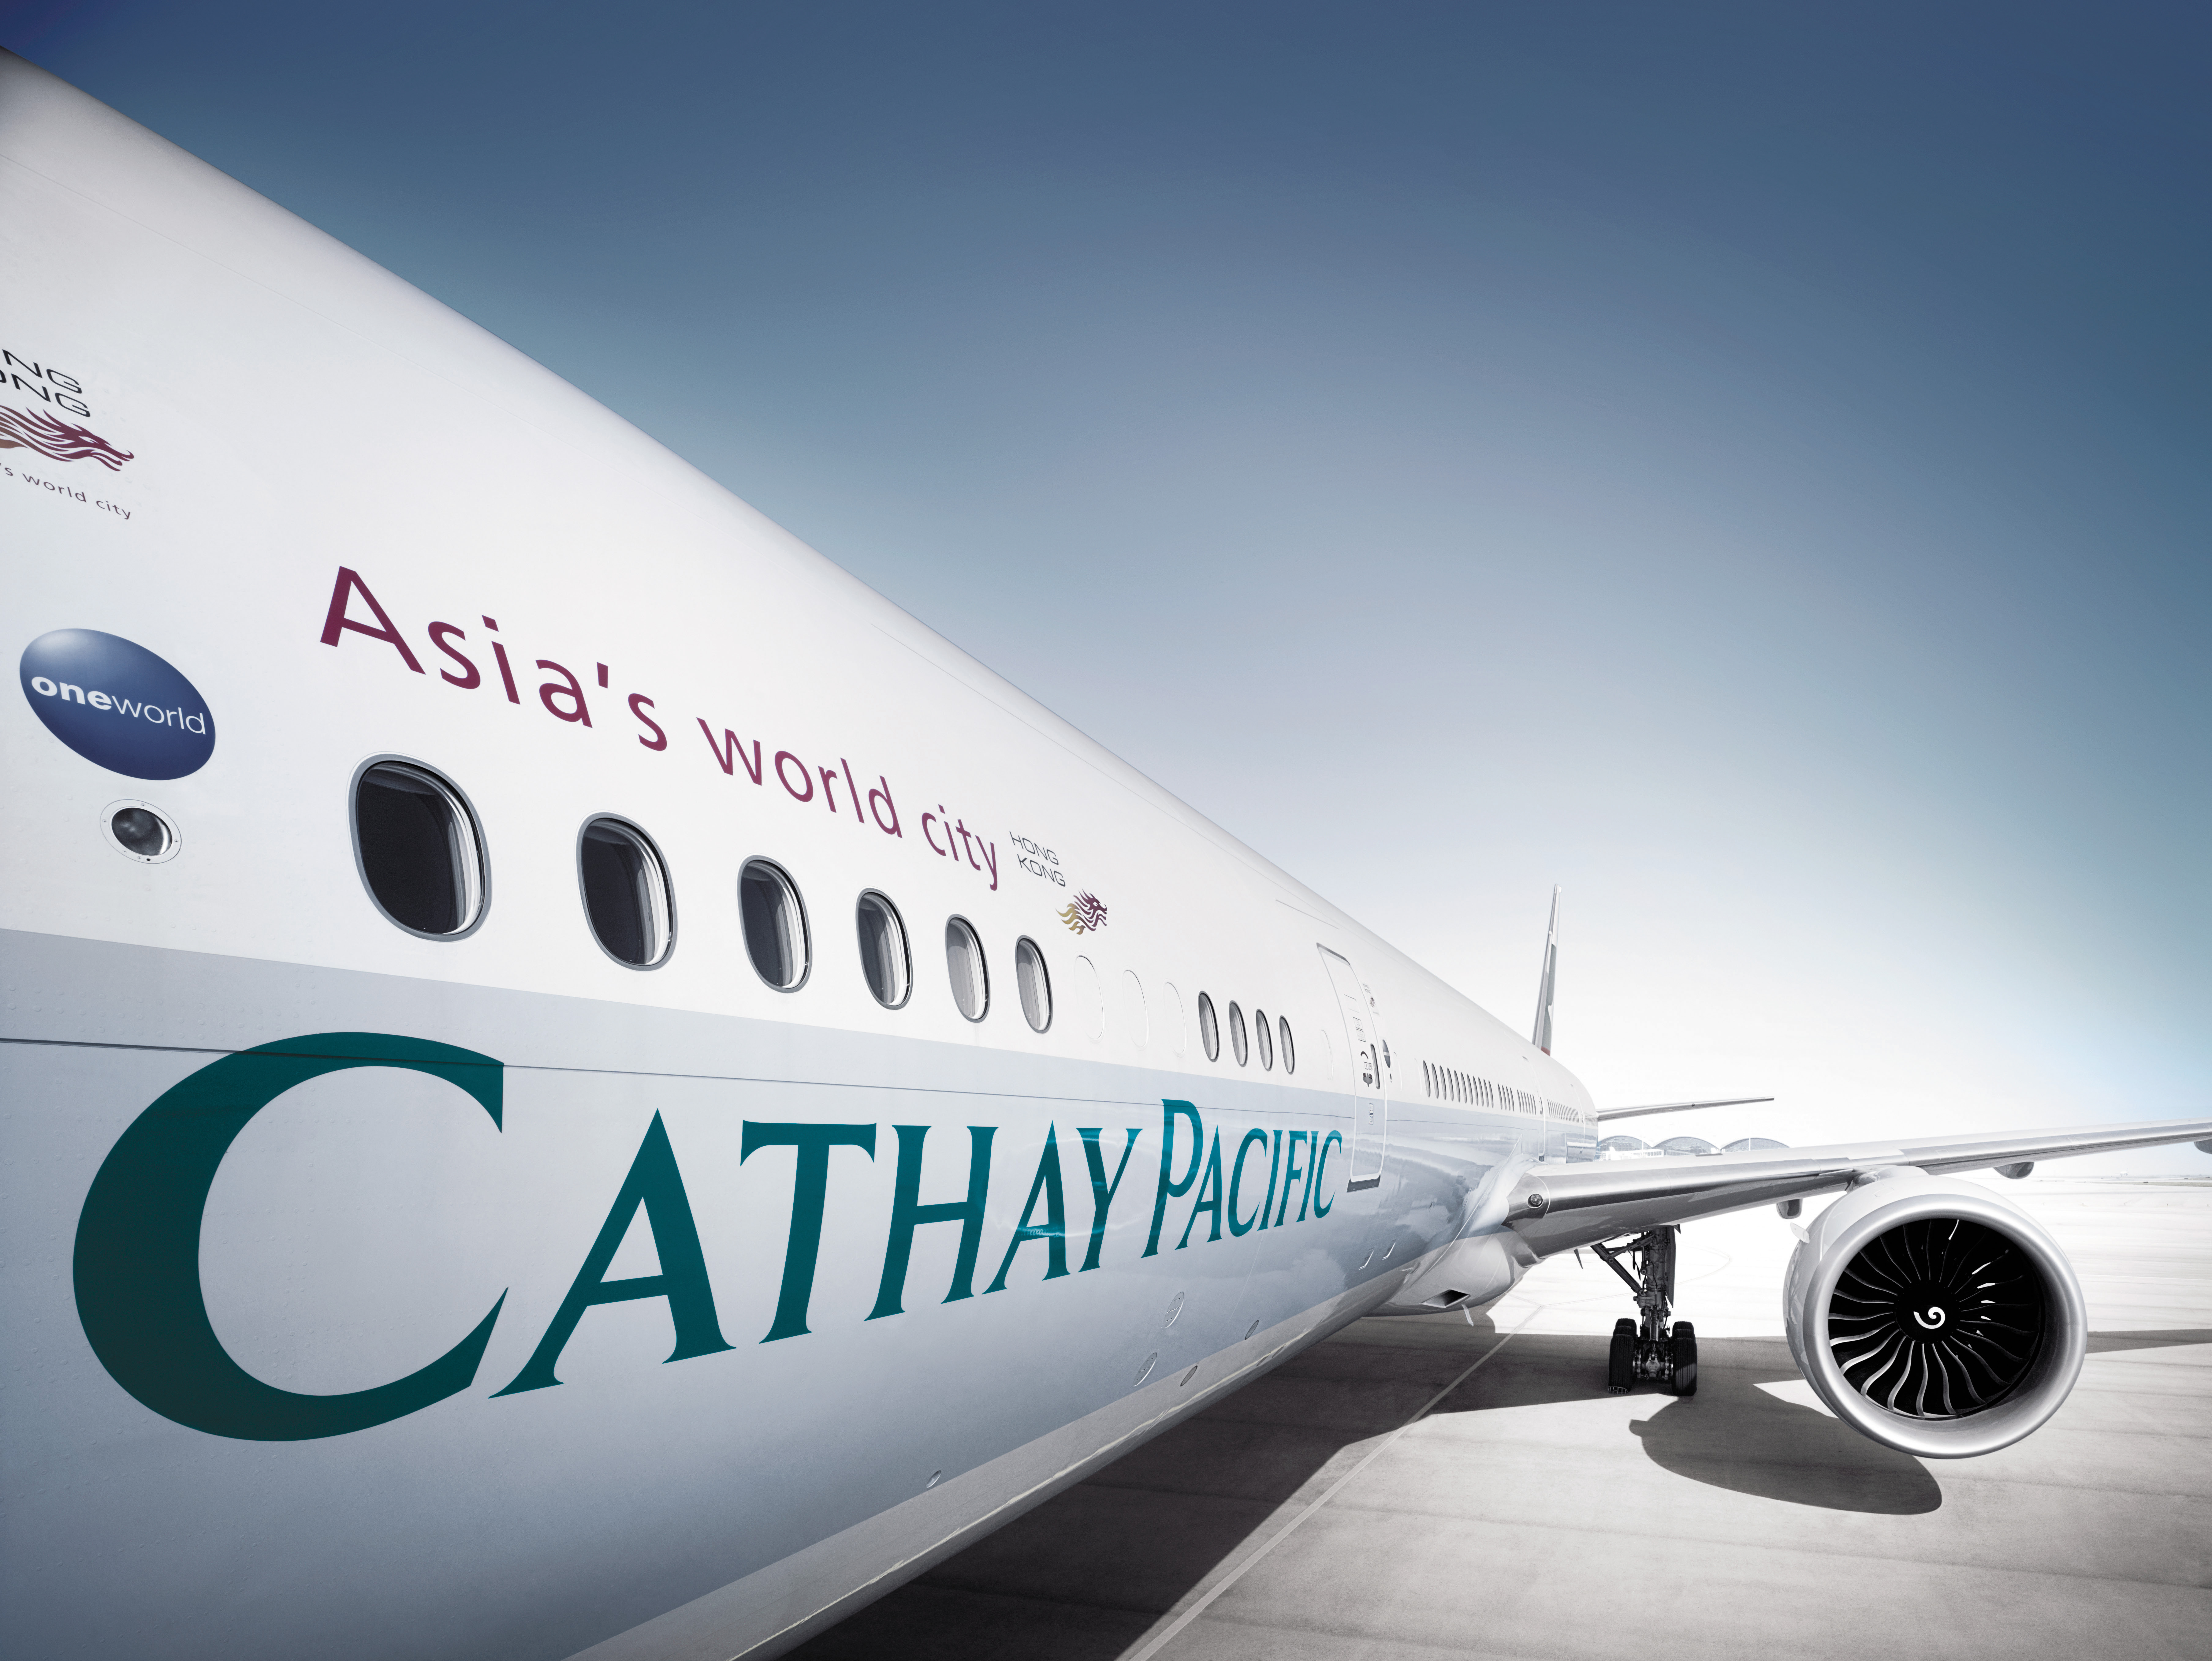 cathay pacific of organization leadership It also helped cathay pacific leaders get a better sense of how the company can  incorporate these considerations into sustainability efforts.